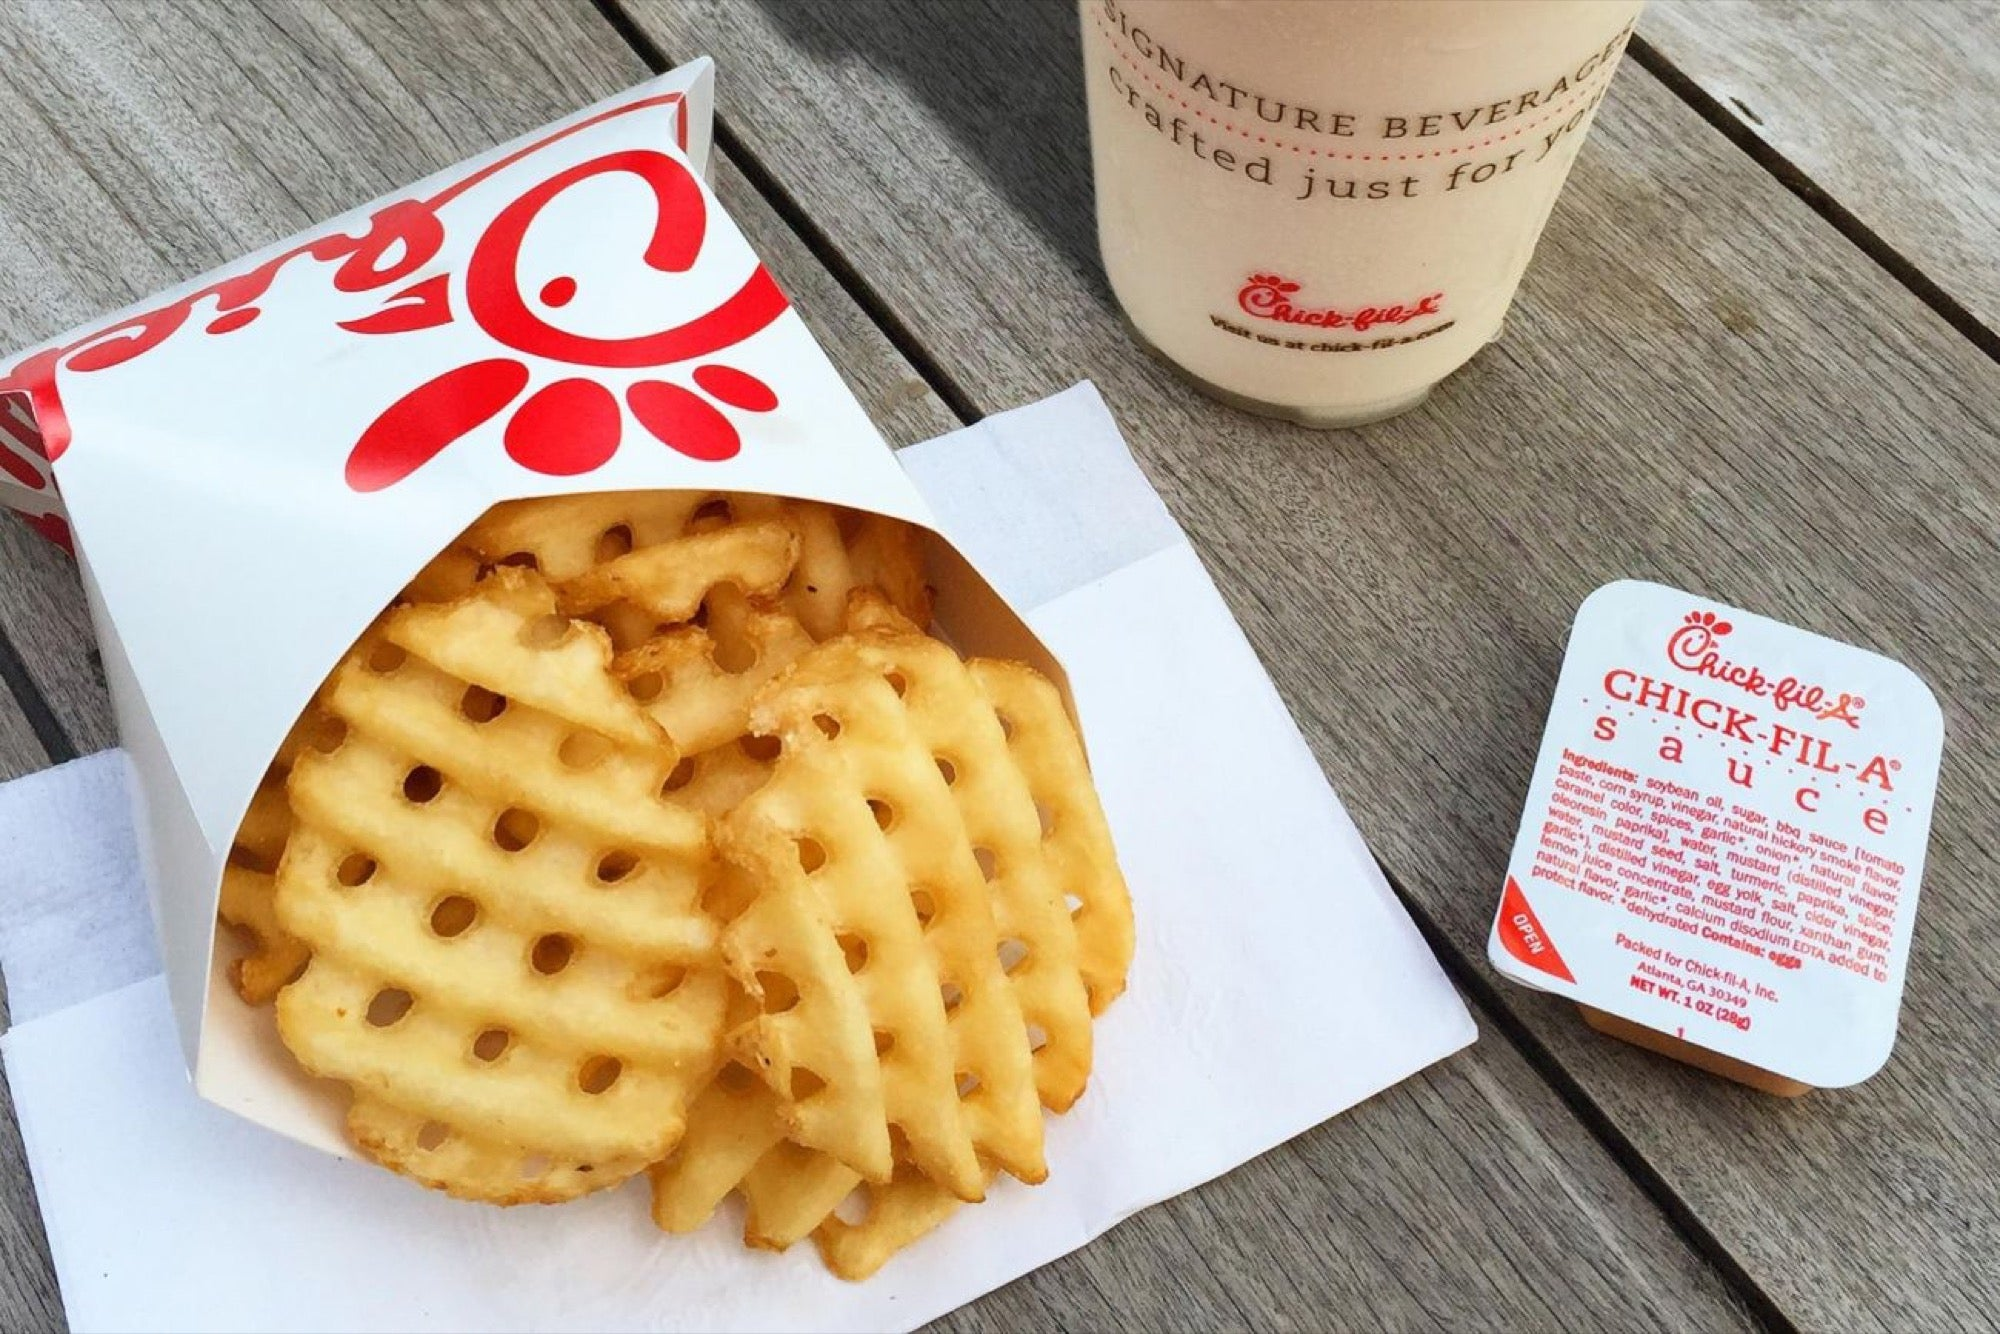 25 Interesting Facts You Should Know About Chick-fil-A